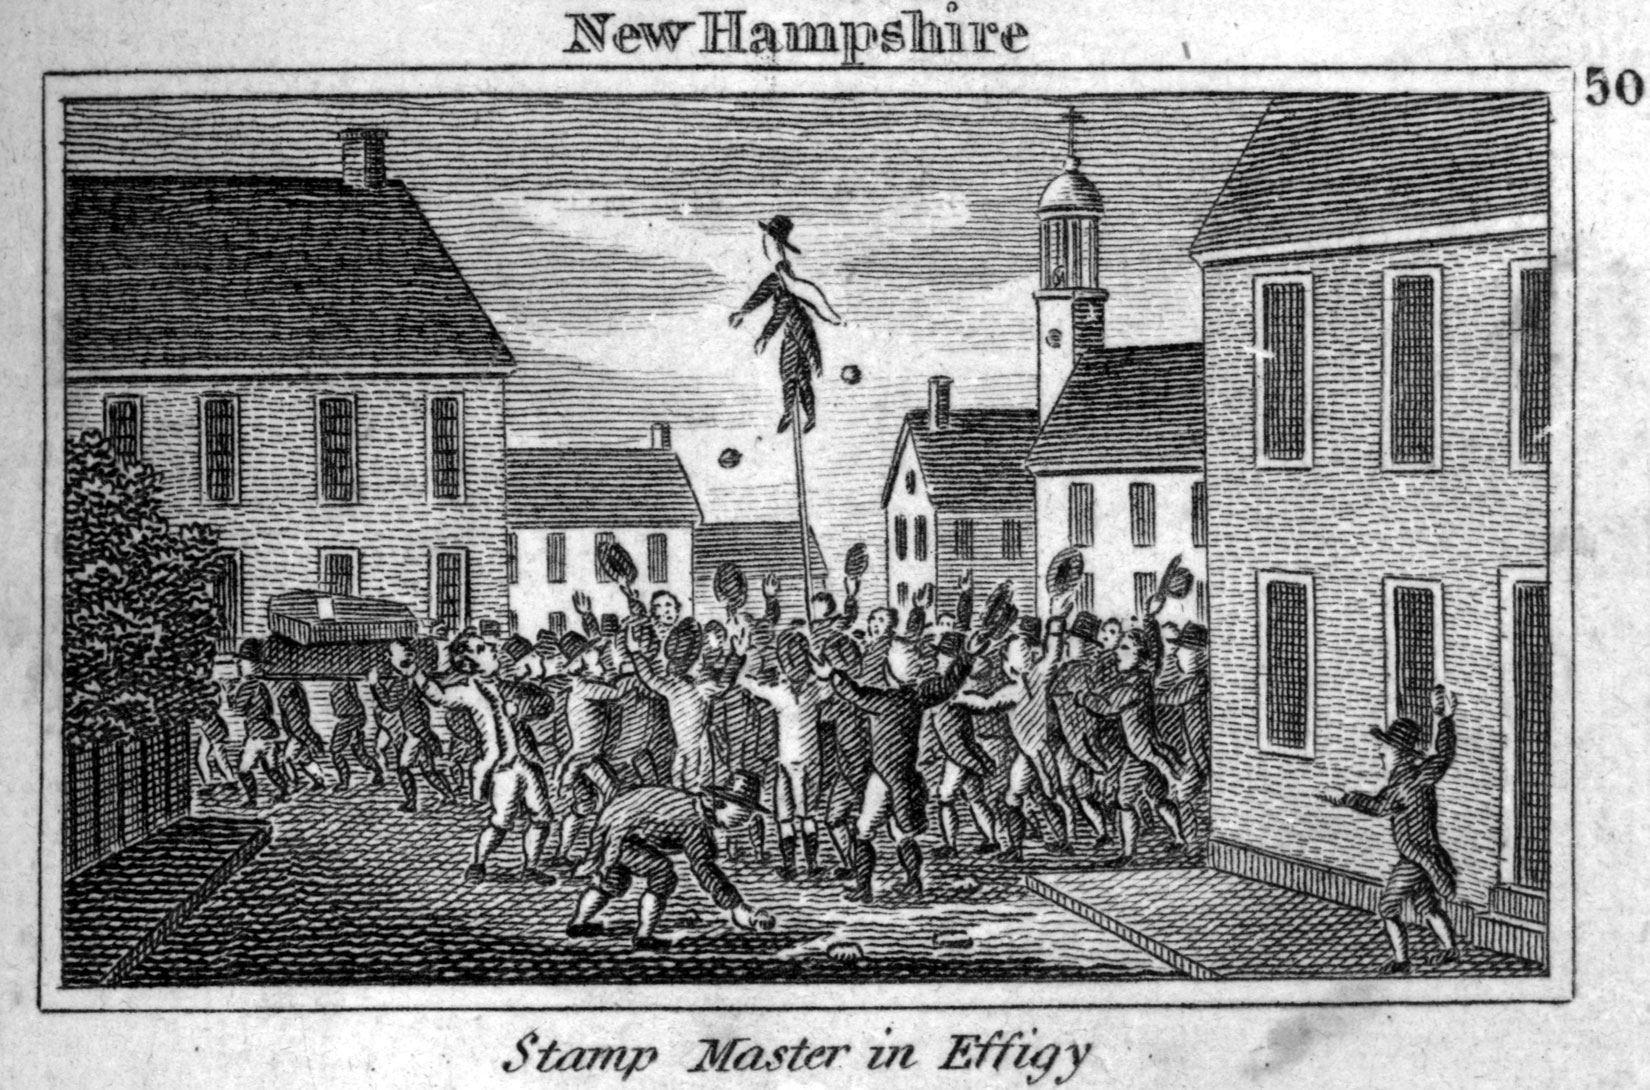 An engraving shows a town square bordered with two story colonial houses. In the center of the square is a crowd of people gathered, facing inwards, most with their arms up. Some hold hats in their upstretched hands. In the center of the crowd is a likeness of a person up on a stick above people's heads. There are two circular items up in the air near the figure. One person in front is bending down, perhaps to pick something up. About five figures to the left and in the background are carrying a large box on their shoulders. Above the engraving are the words